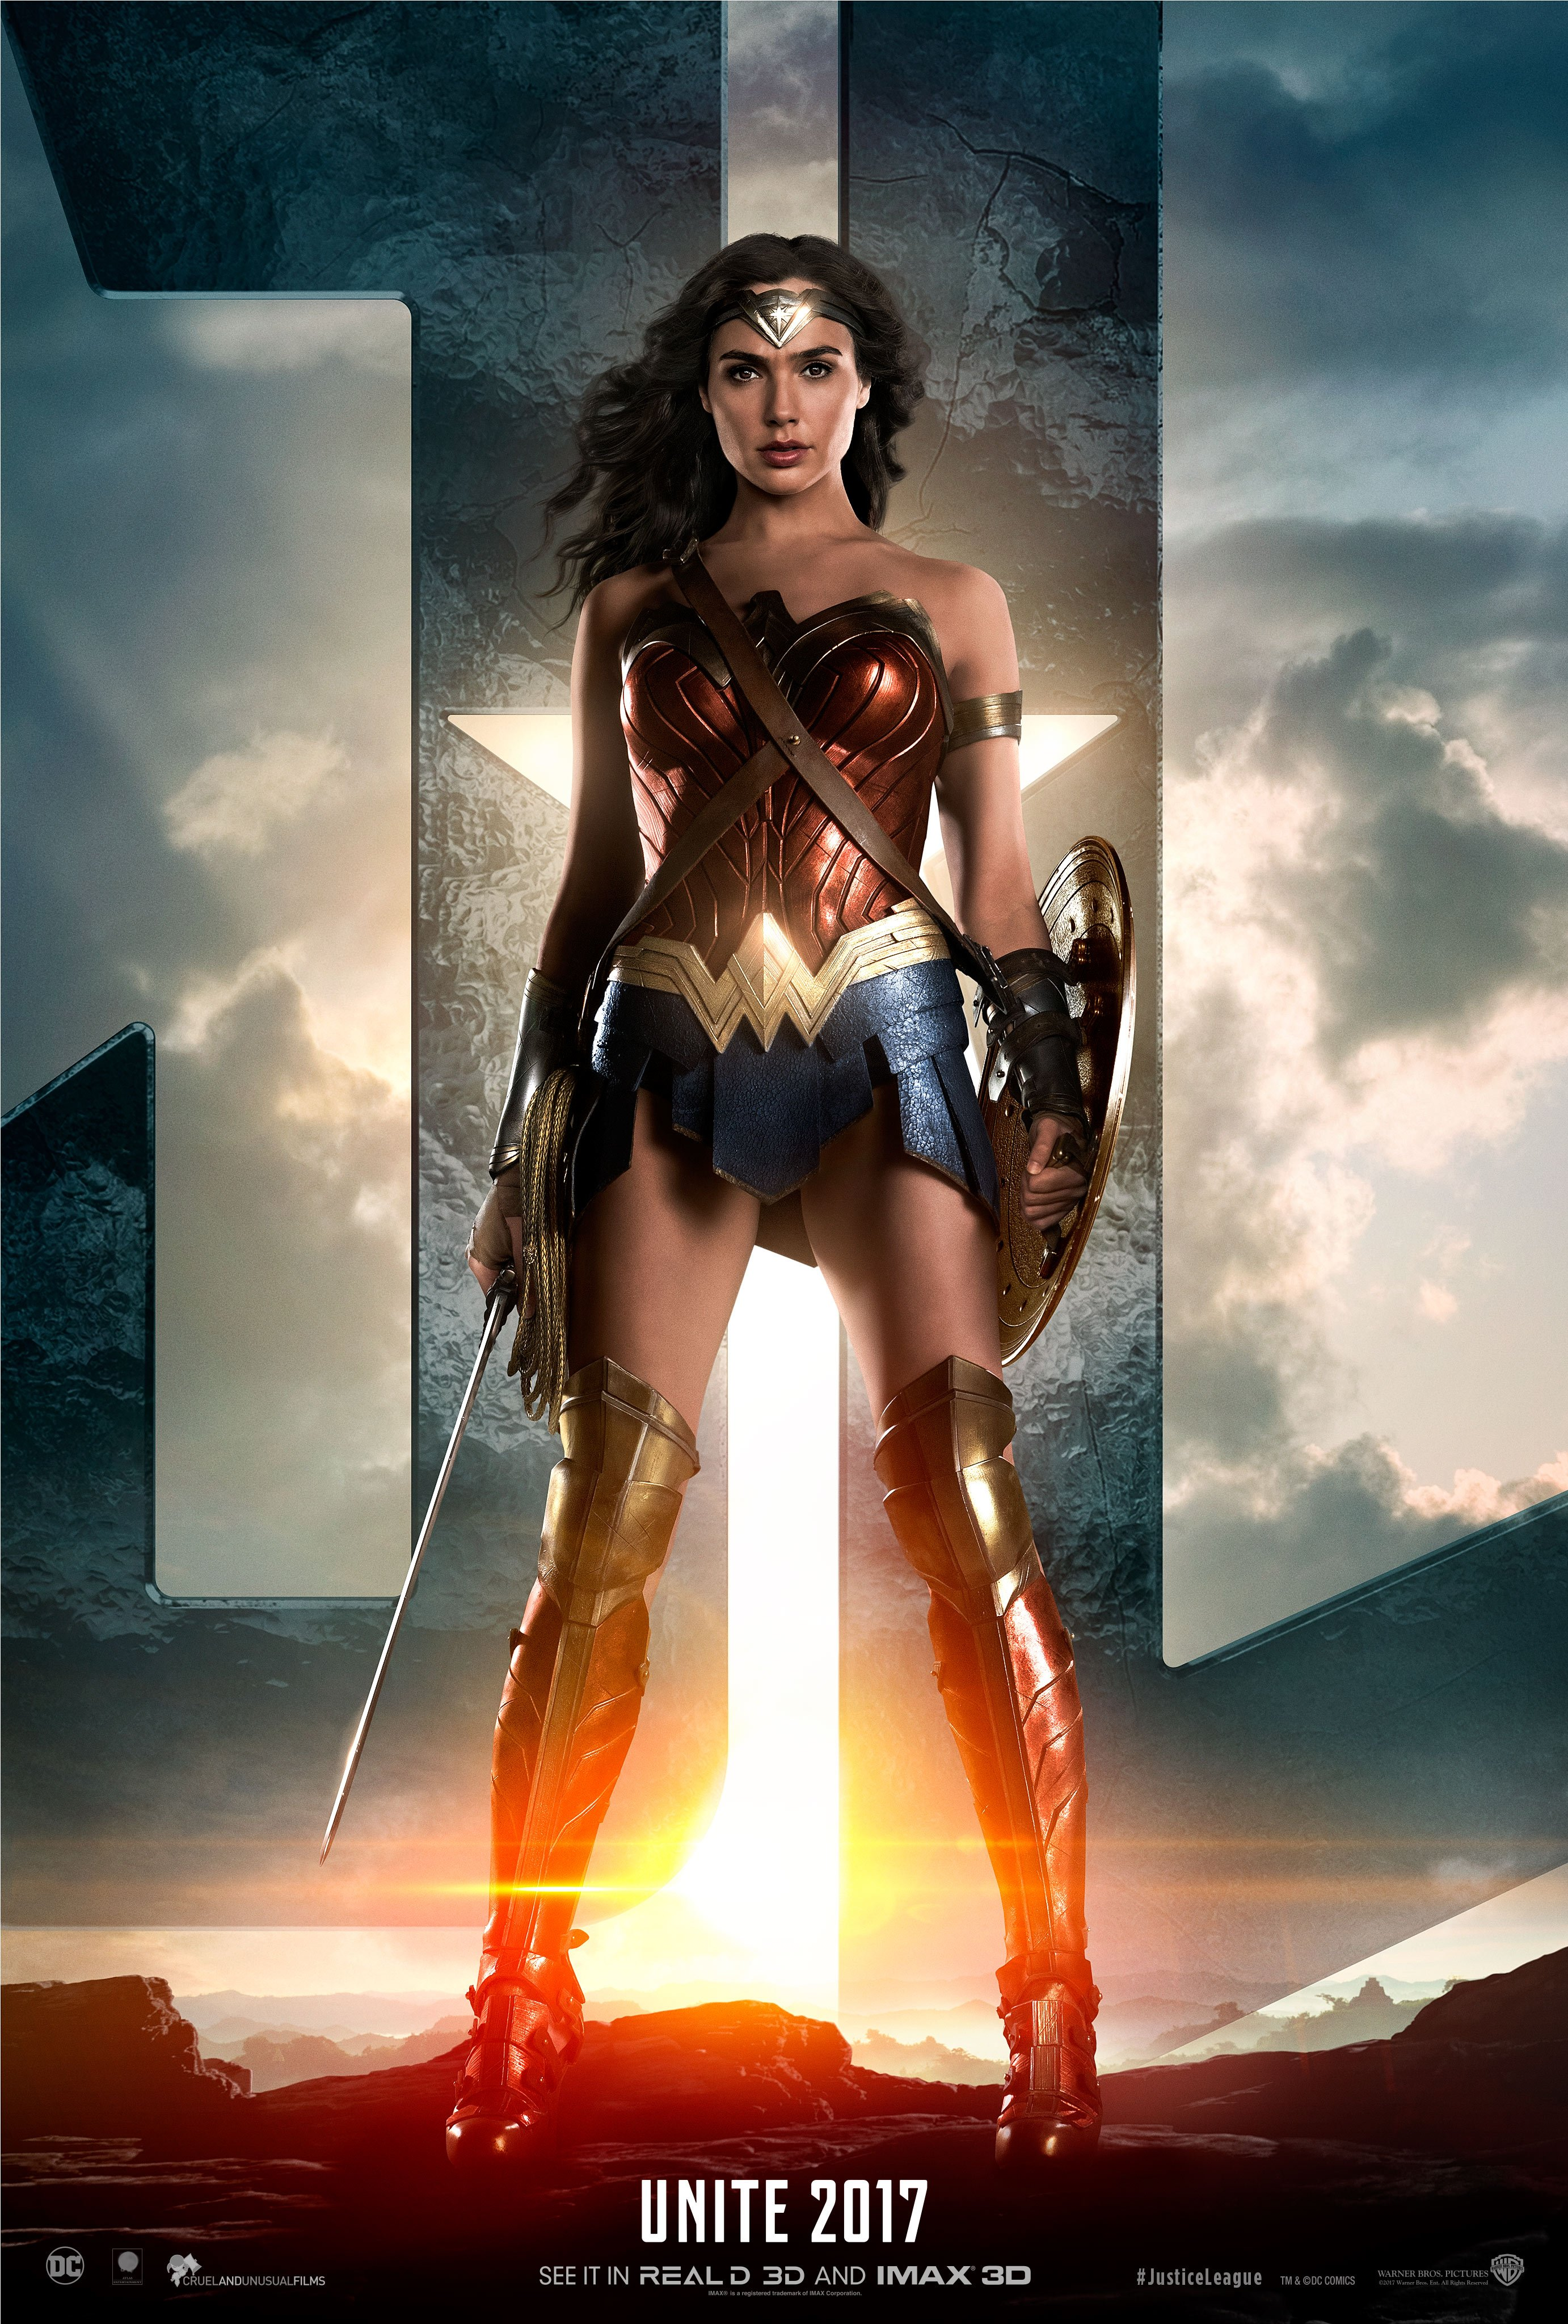 Today's JUSTICE LEAGUE Teaser Trailer Features Wonder Woman (complete with stunning character poster)!